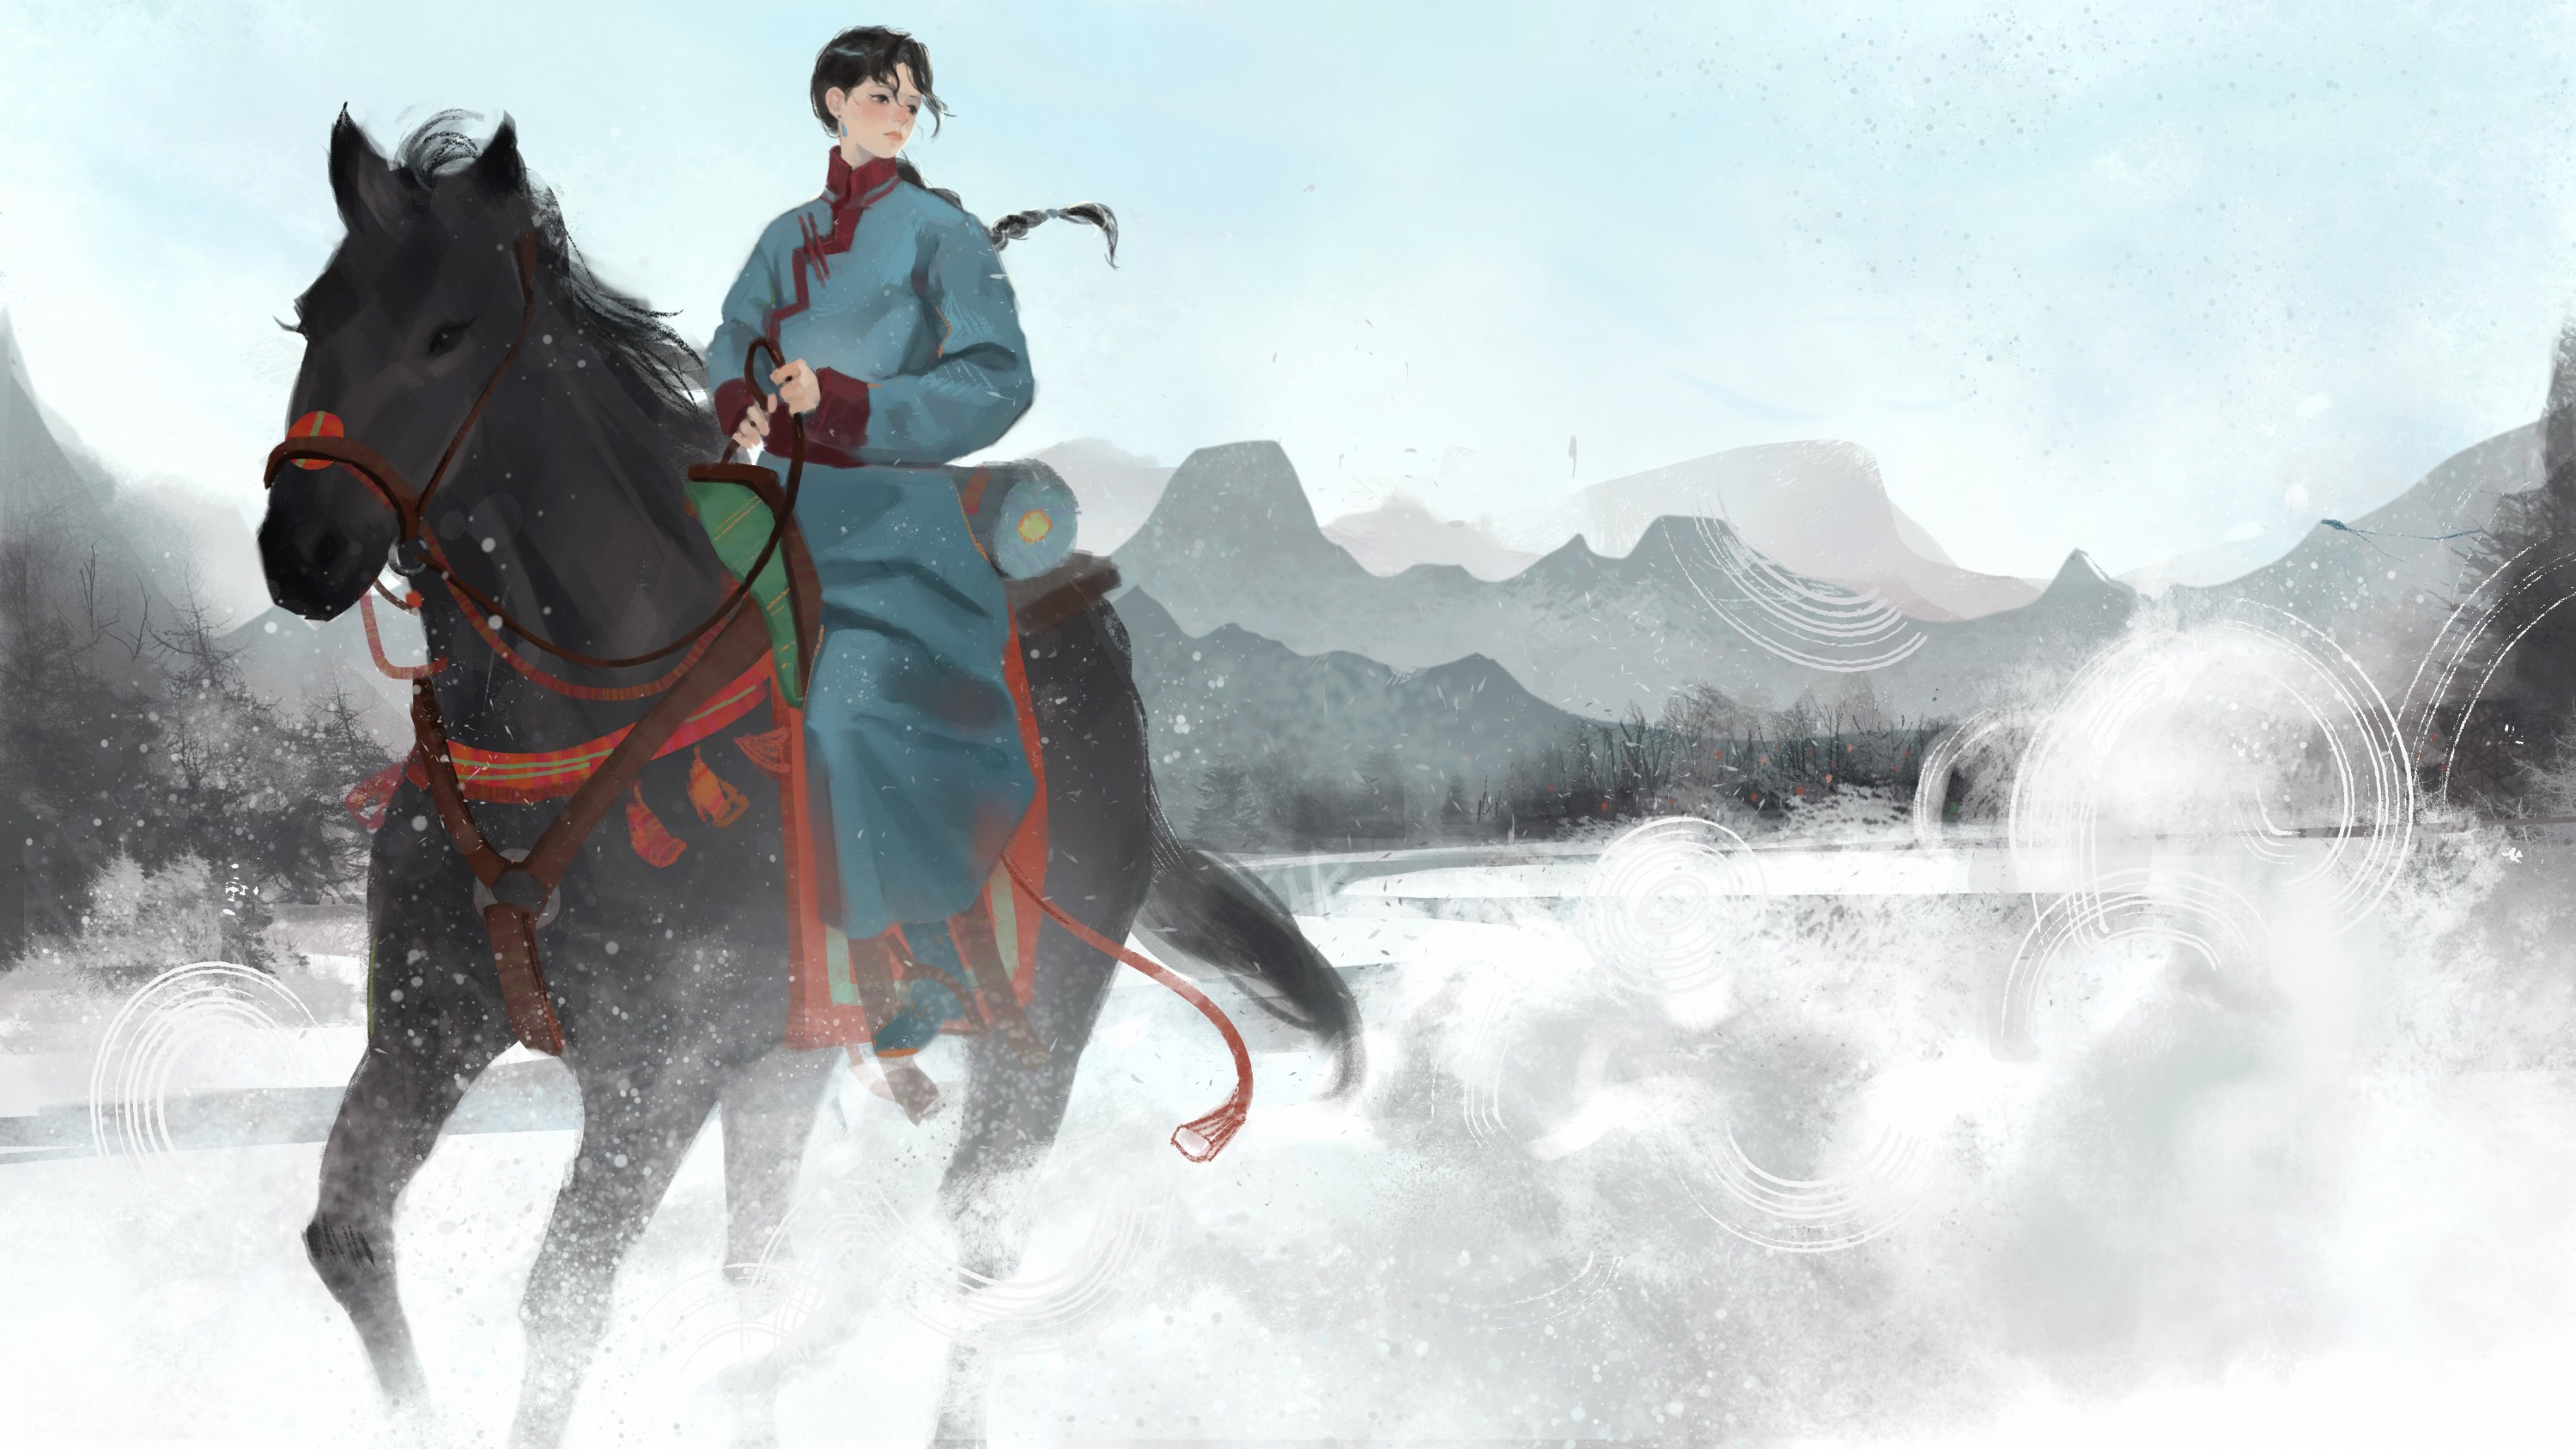 Rider and her horse trotting on snowy plane